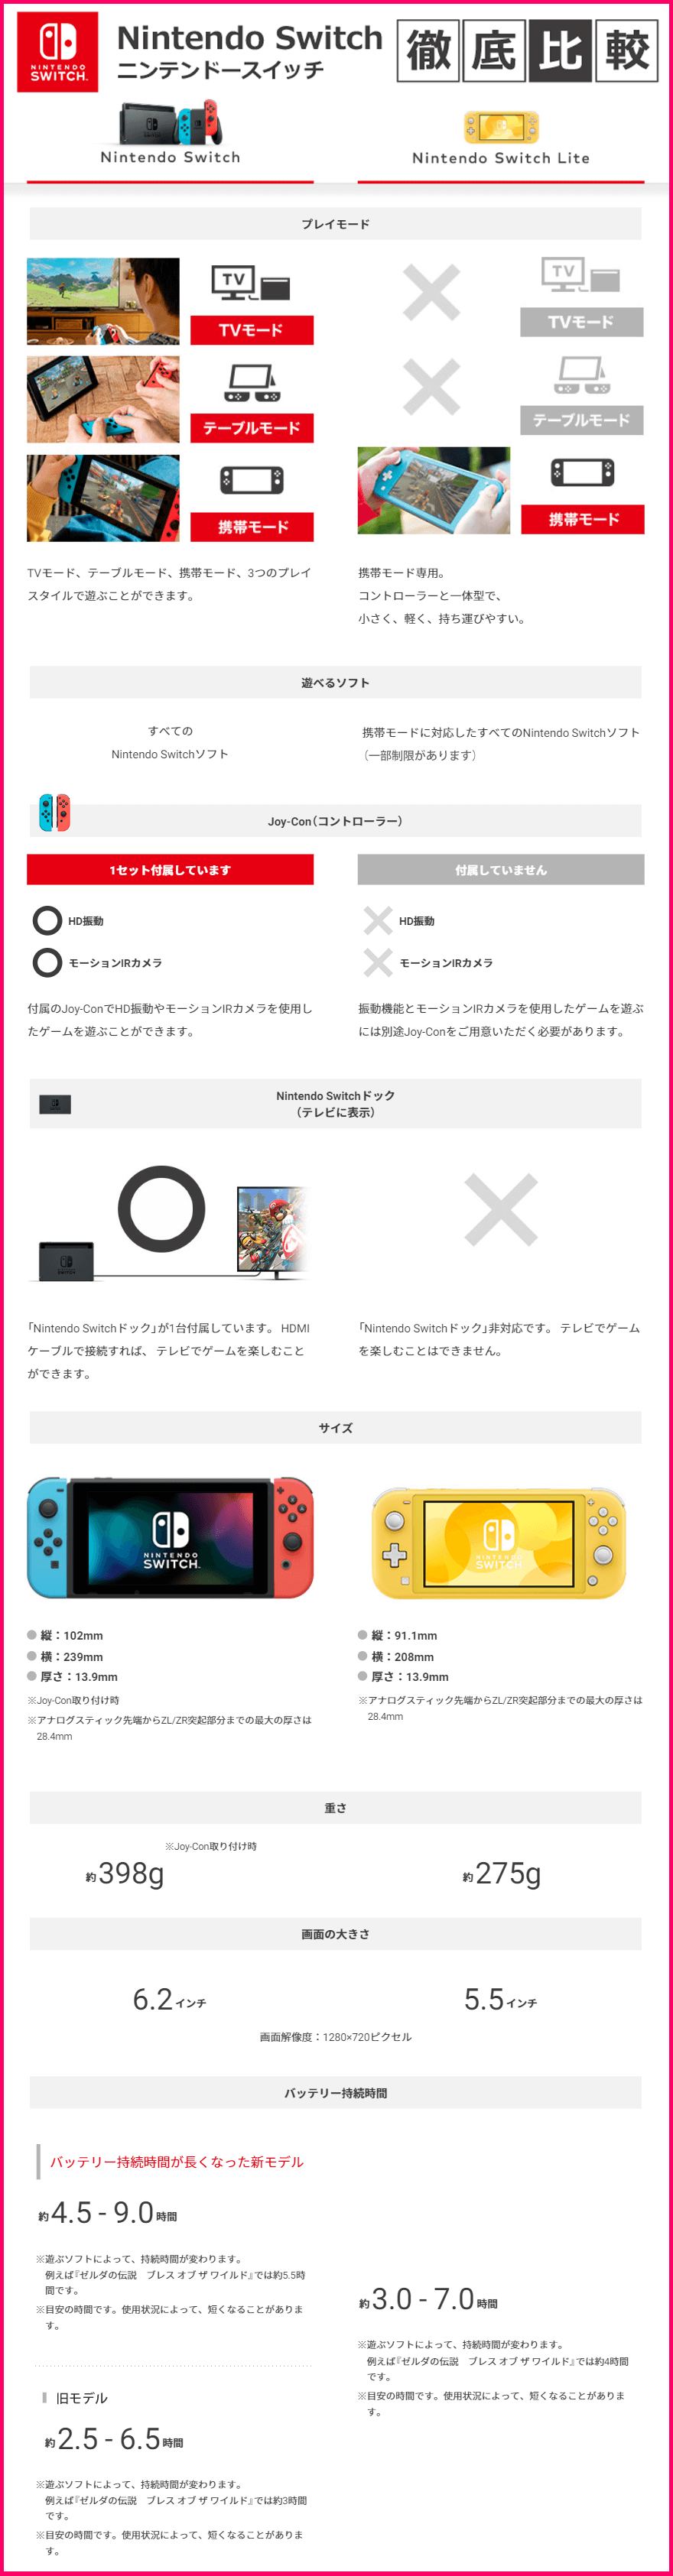 Nintendo Switch 比較表